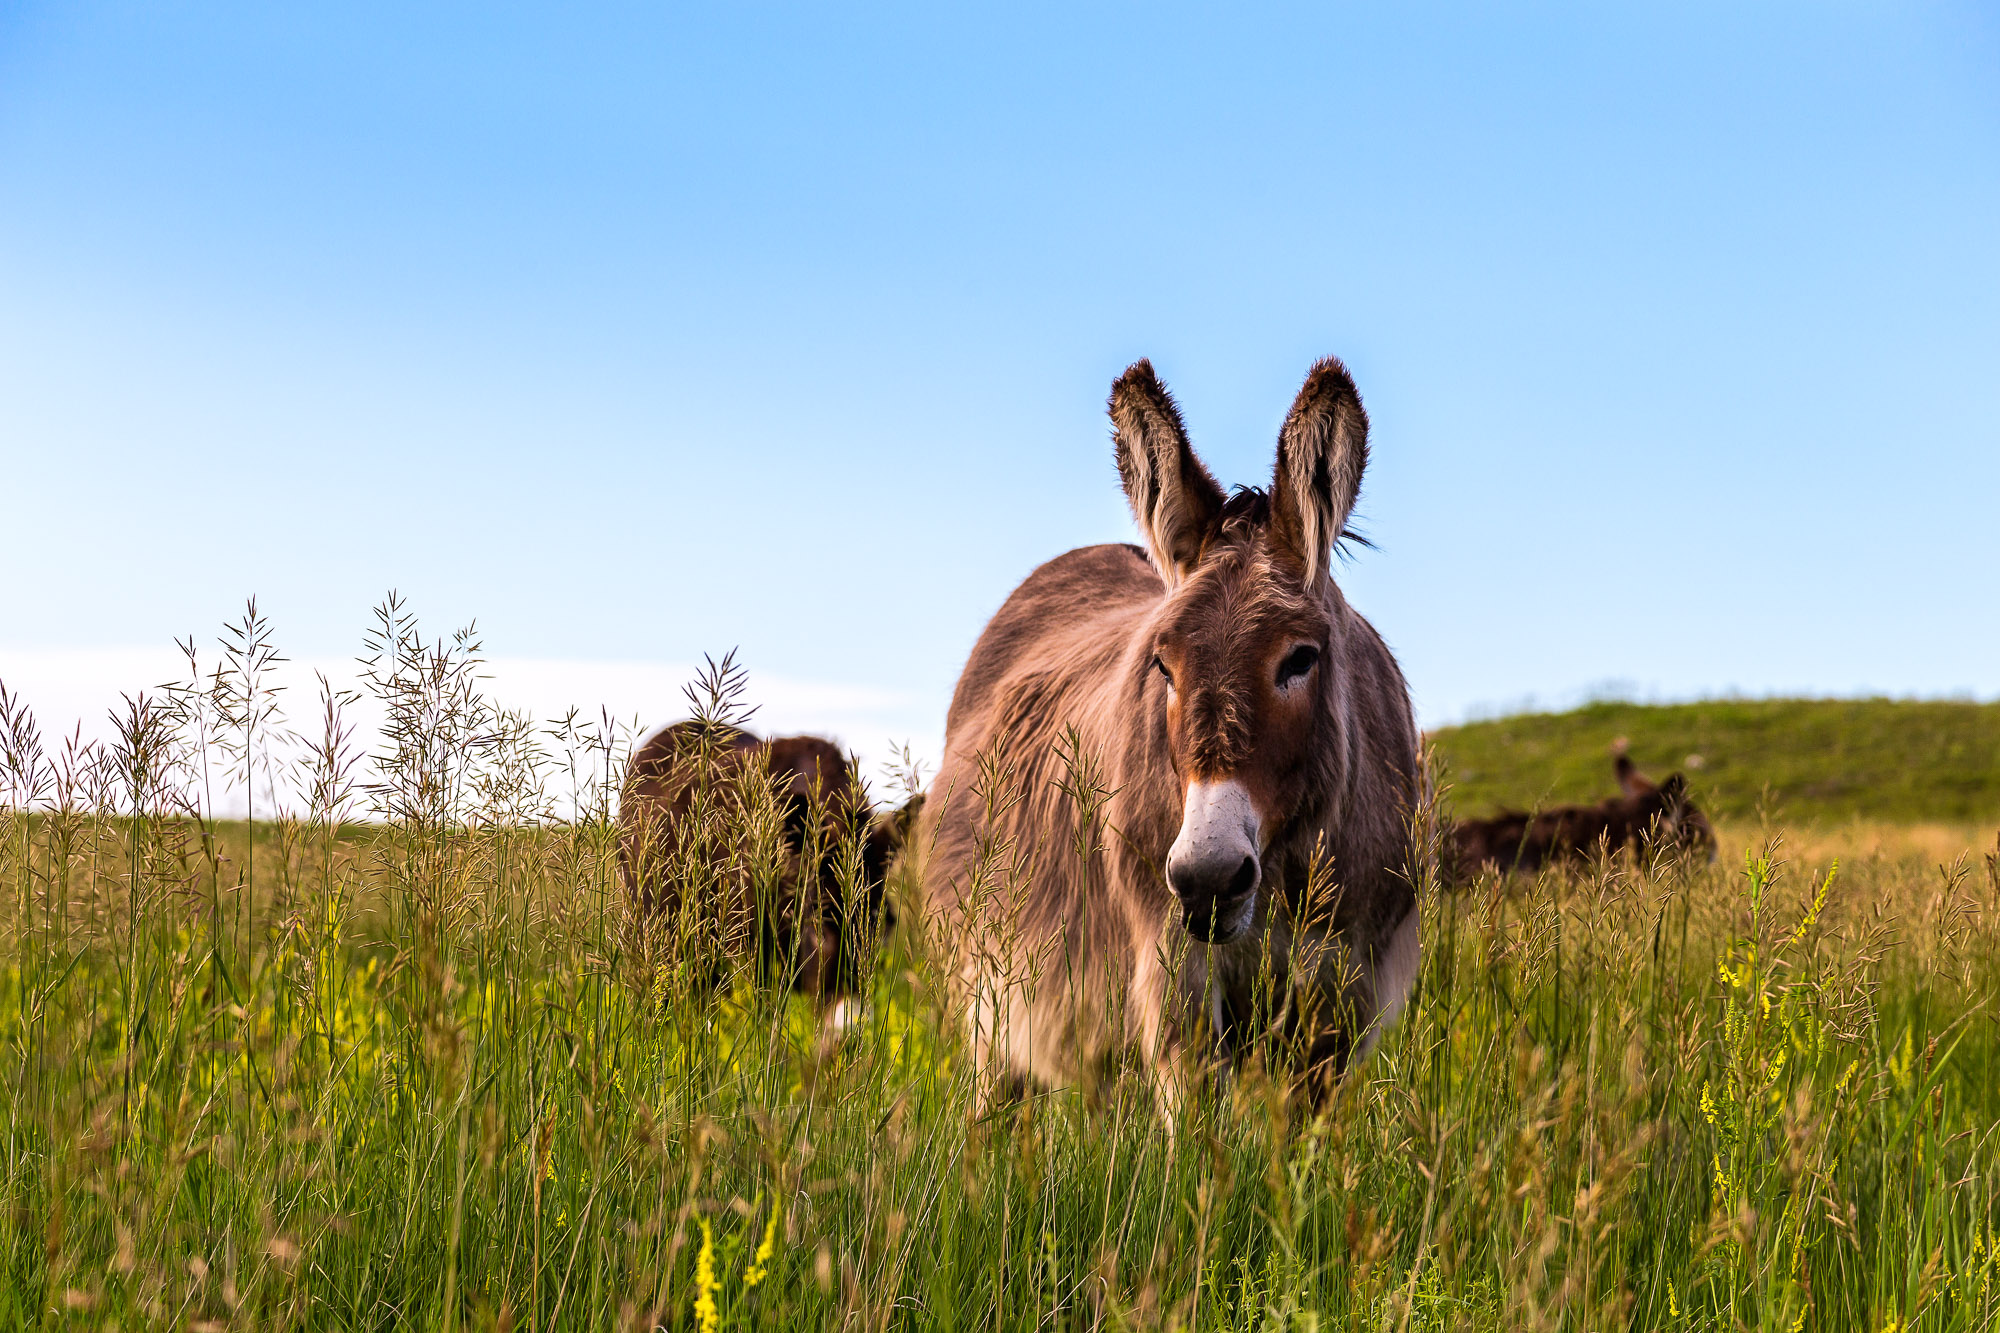 Pregnant burro in tall grass